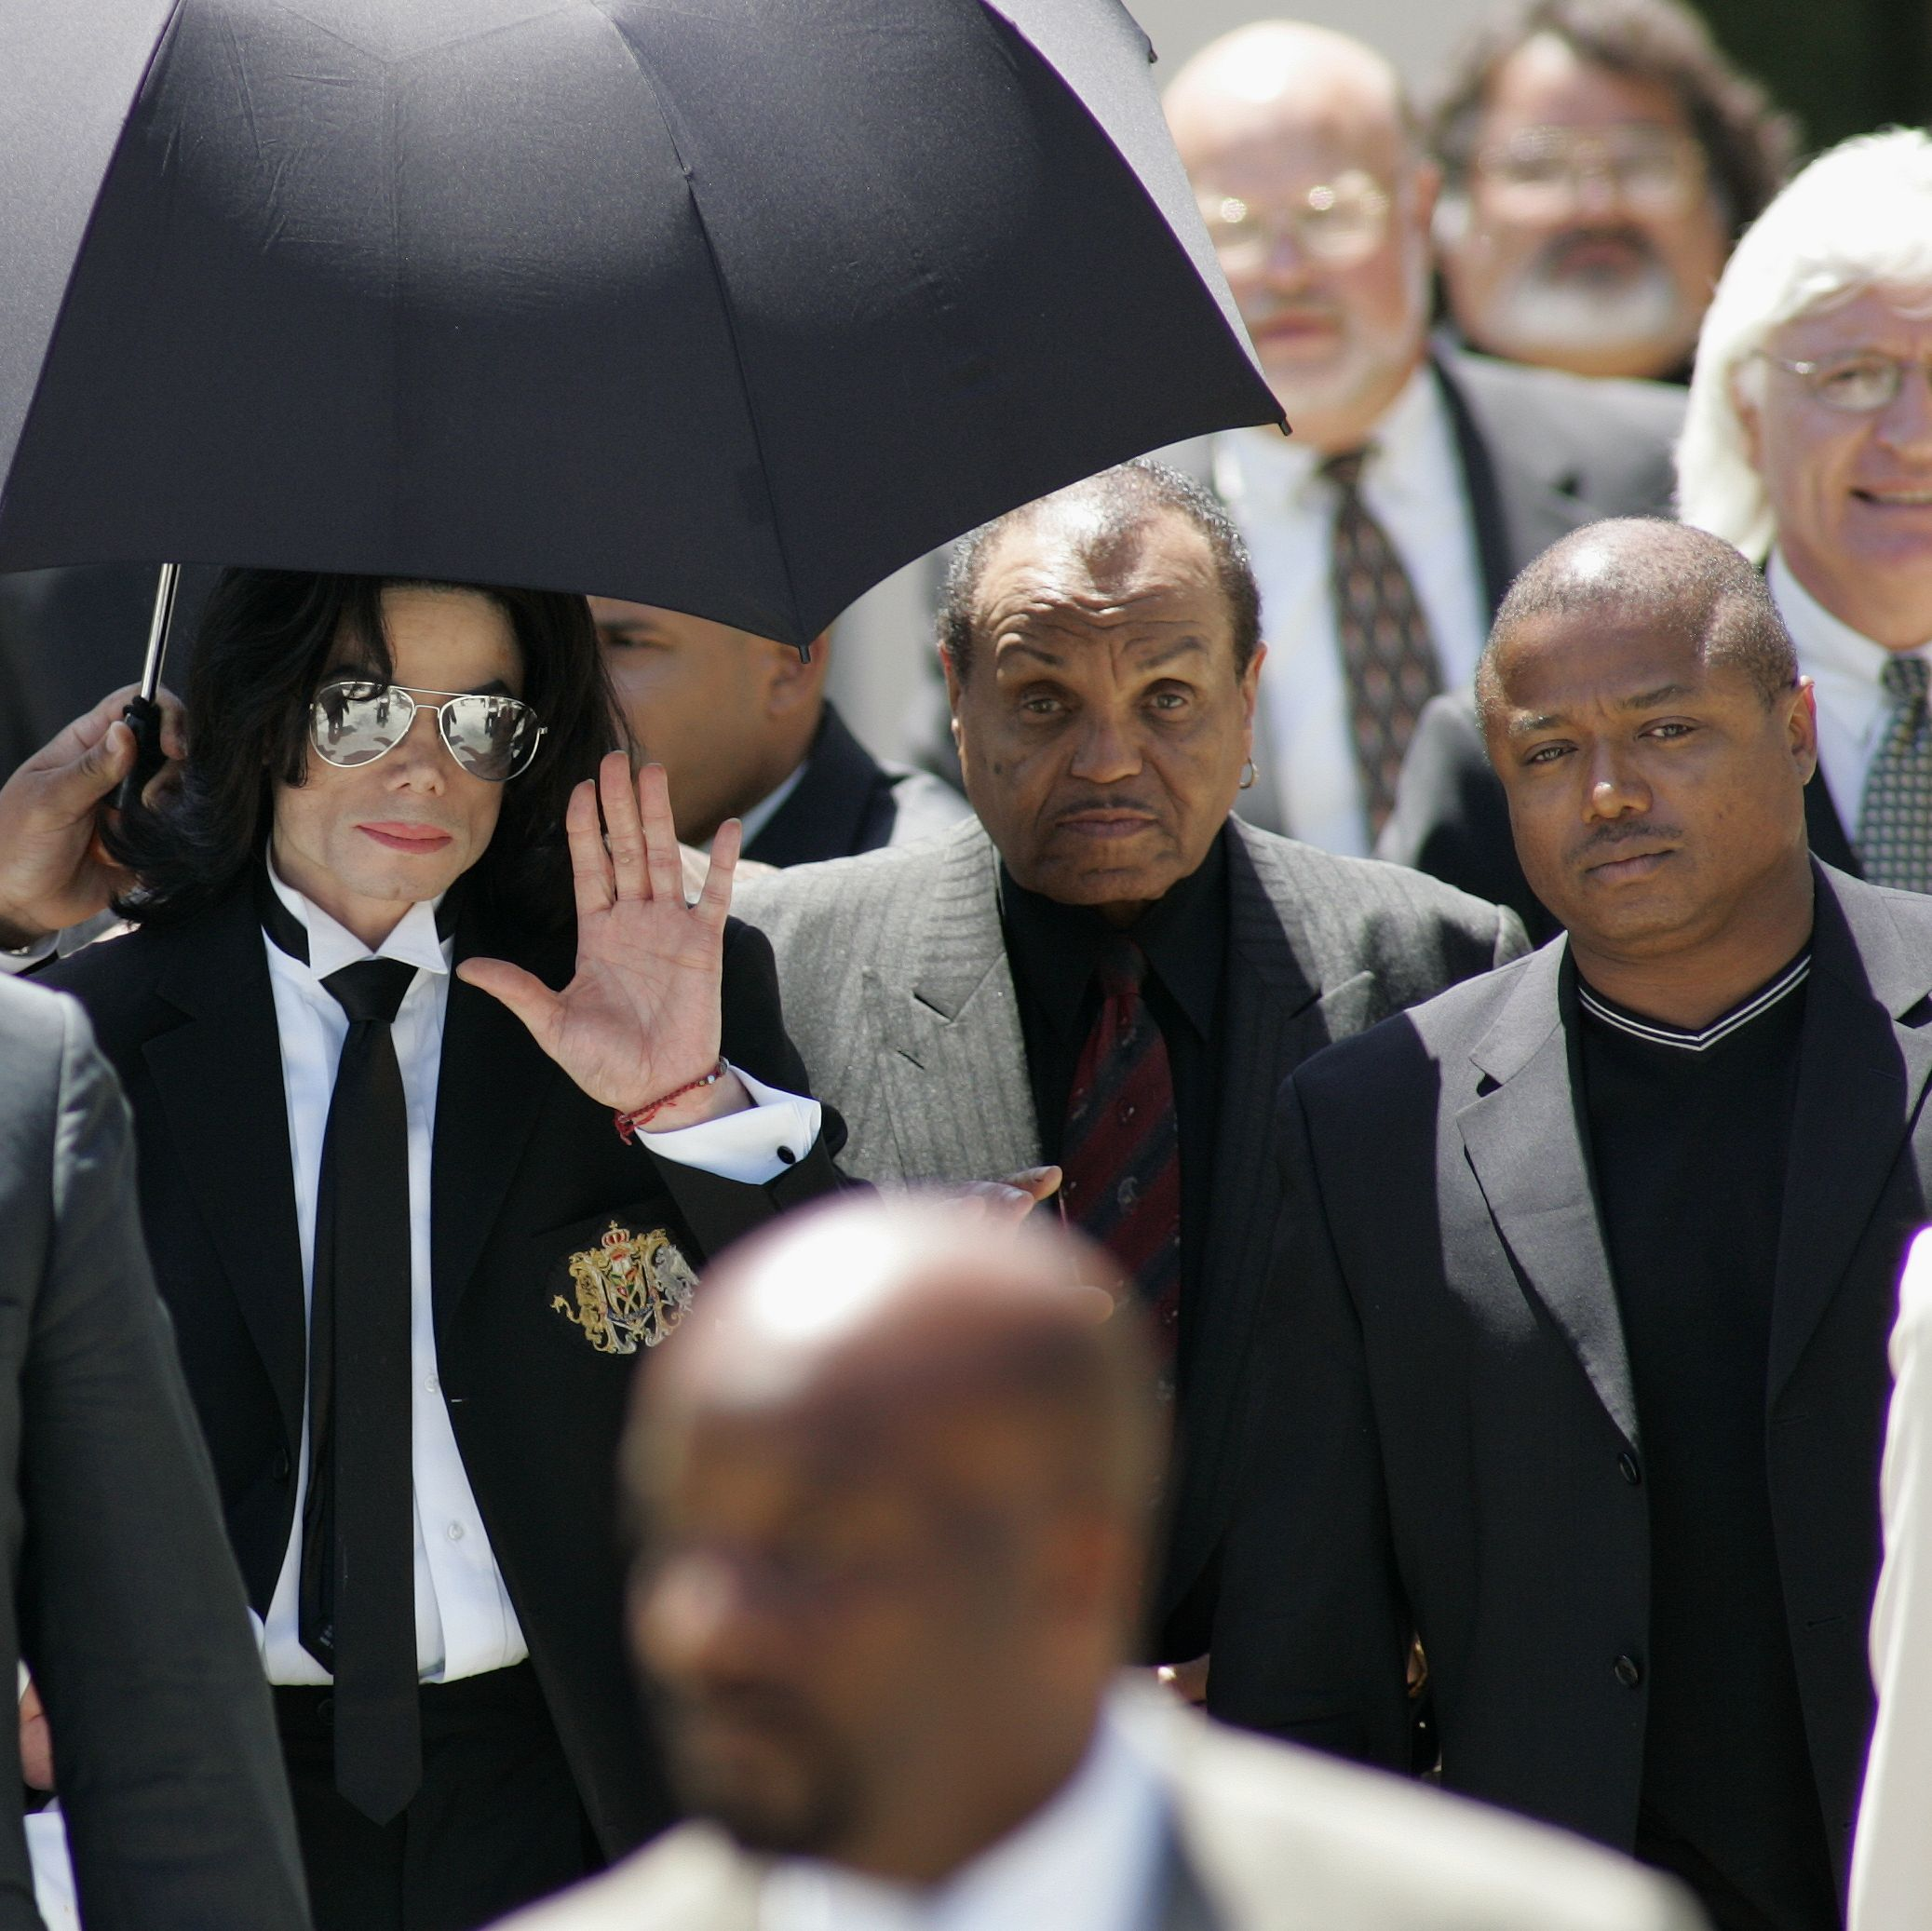 Jackson arrives to court with his father, Joe, and his brother Randy.